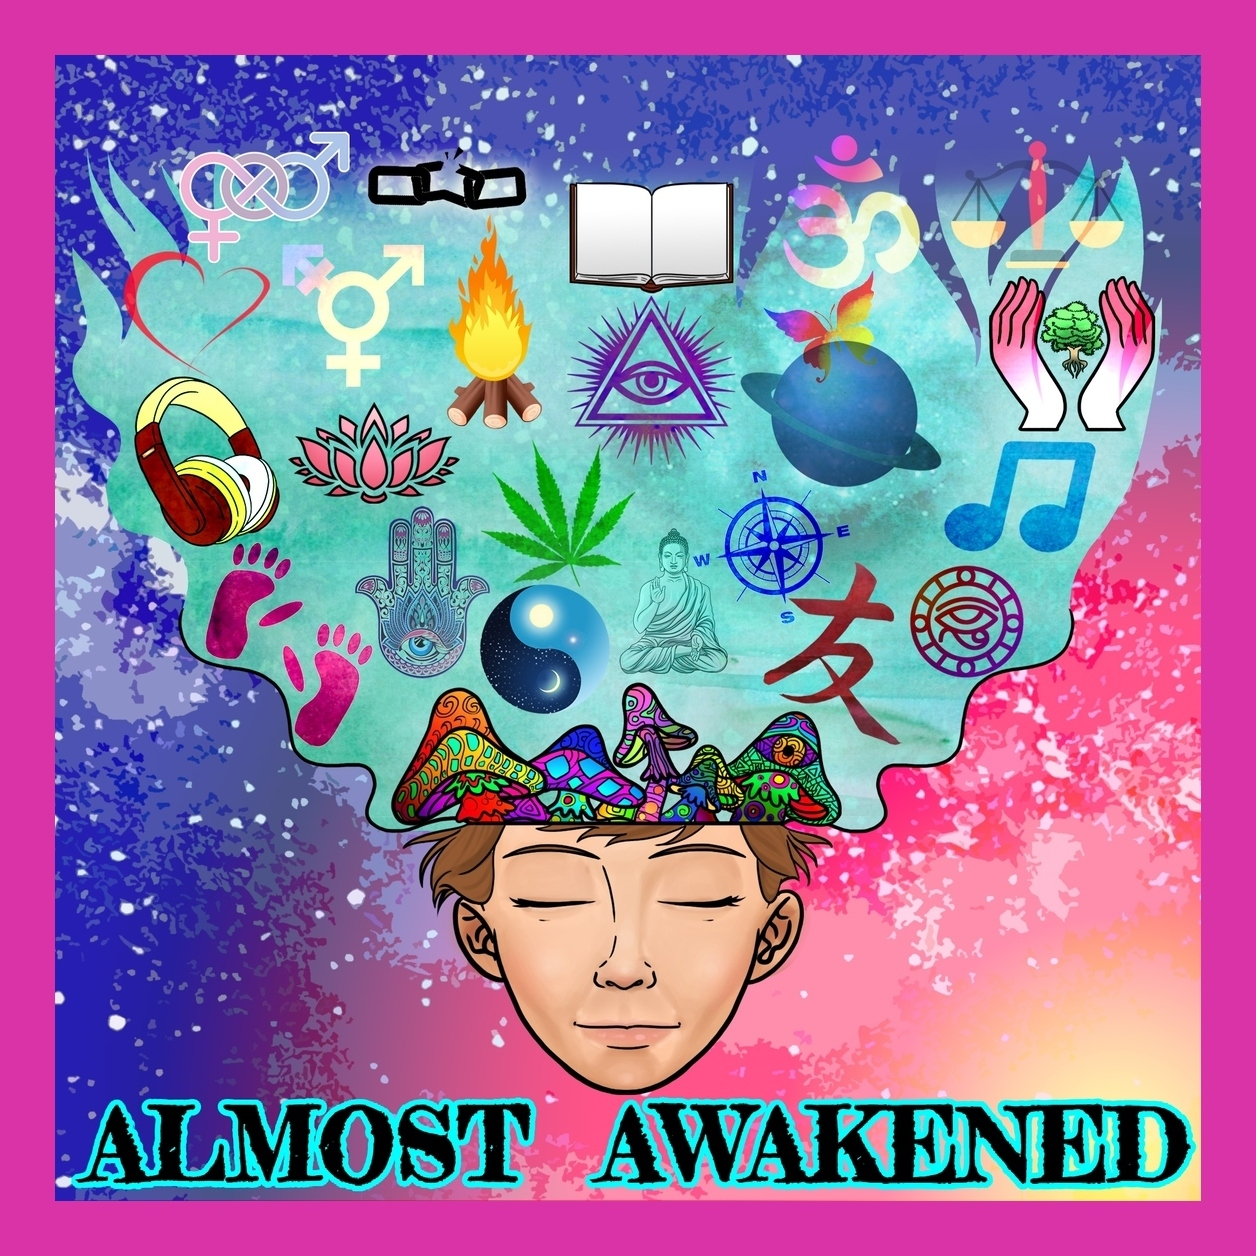 Almost Awakened: 024: Wendi Jensen: Get Curious & The Healing Arts